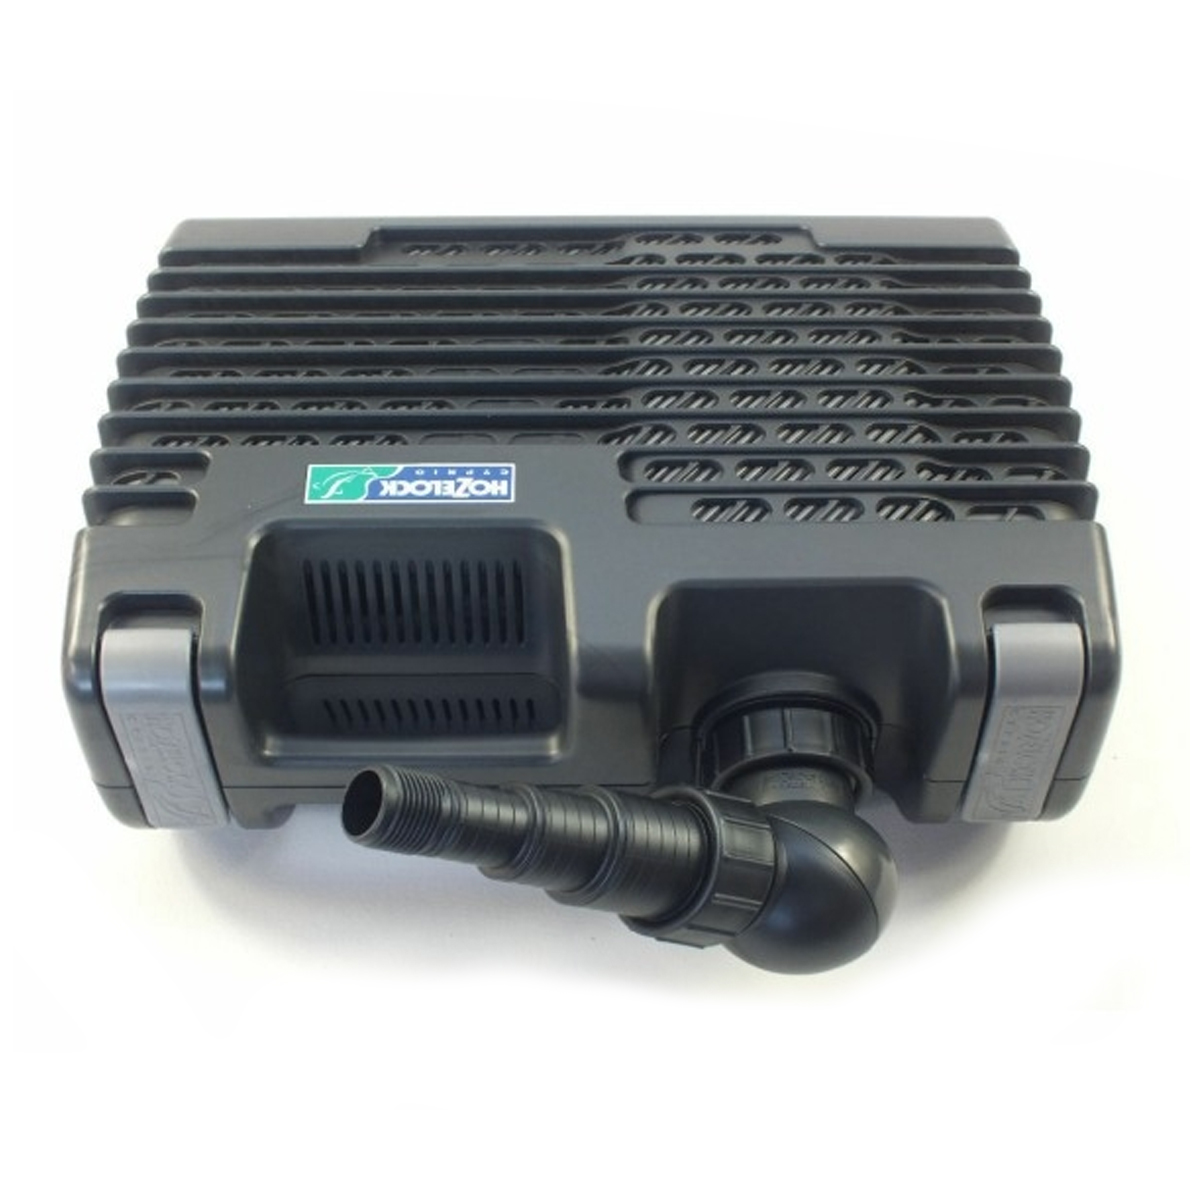 Hozelock aquaforce 6000 filter pump koi fish pond water for Water pond filters and pumps